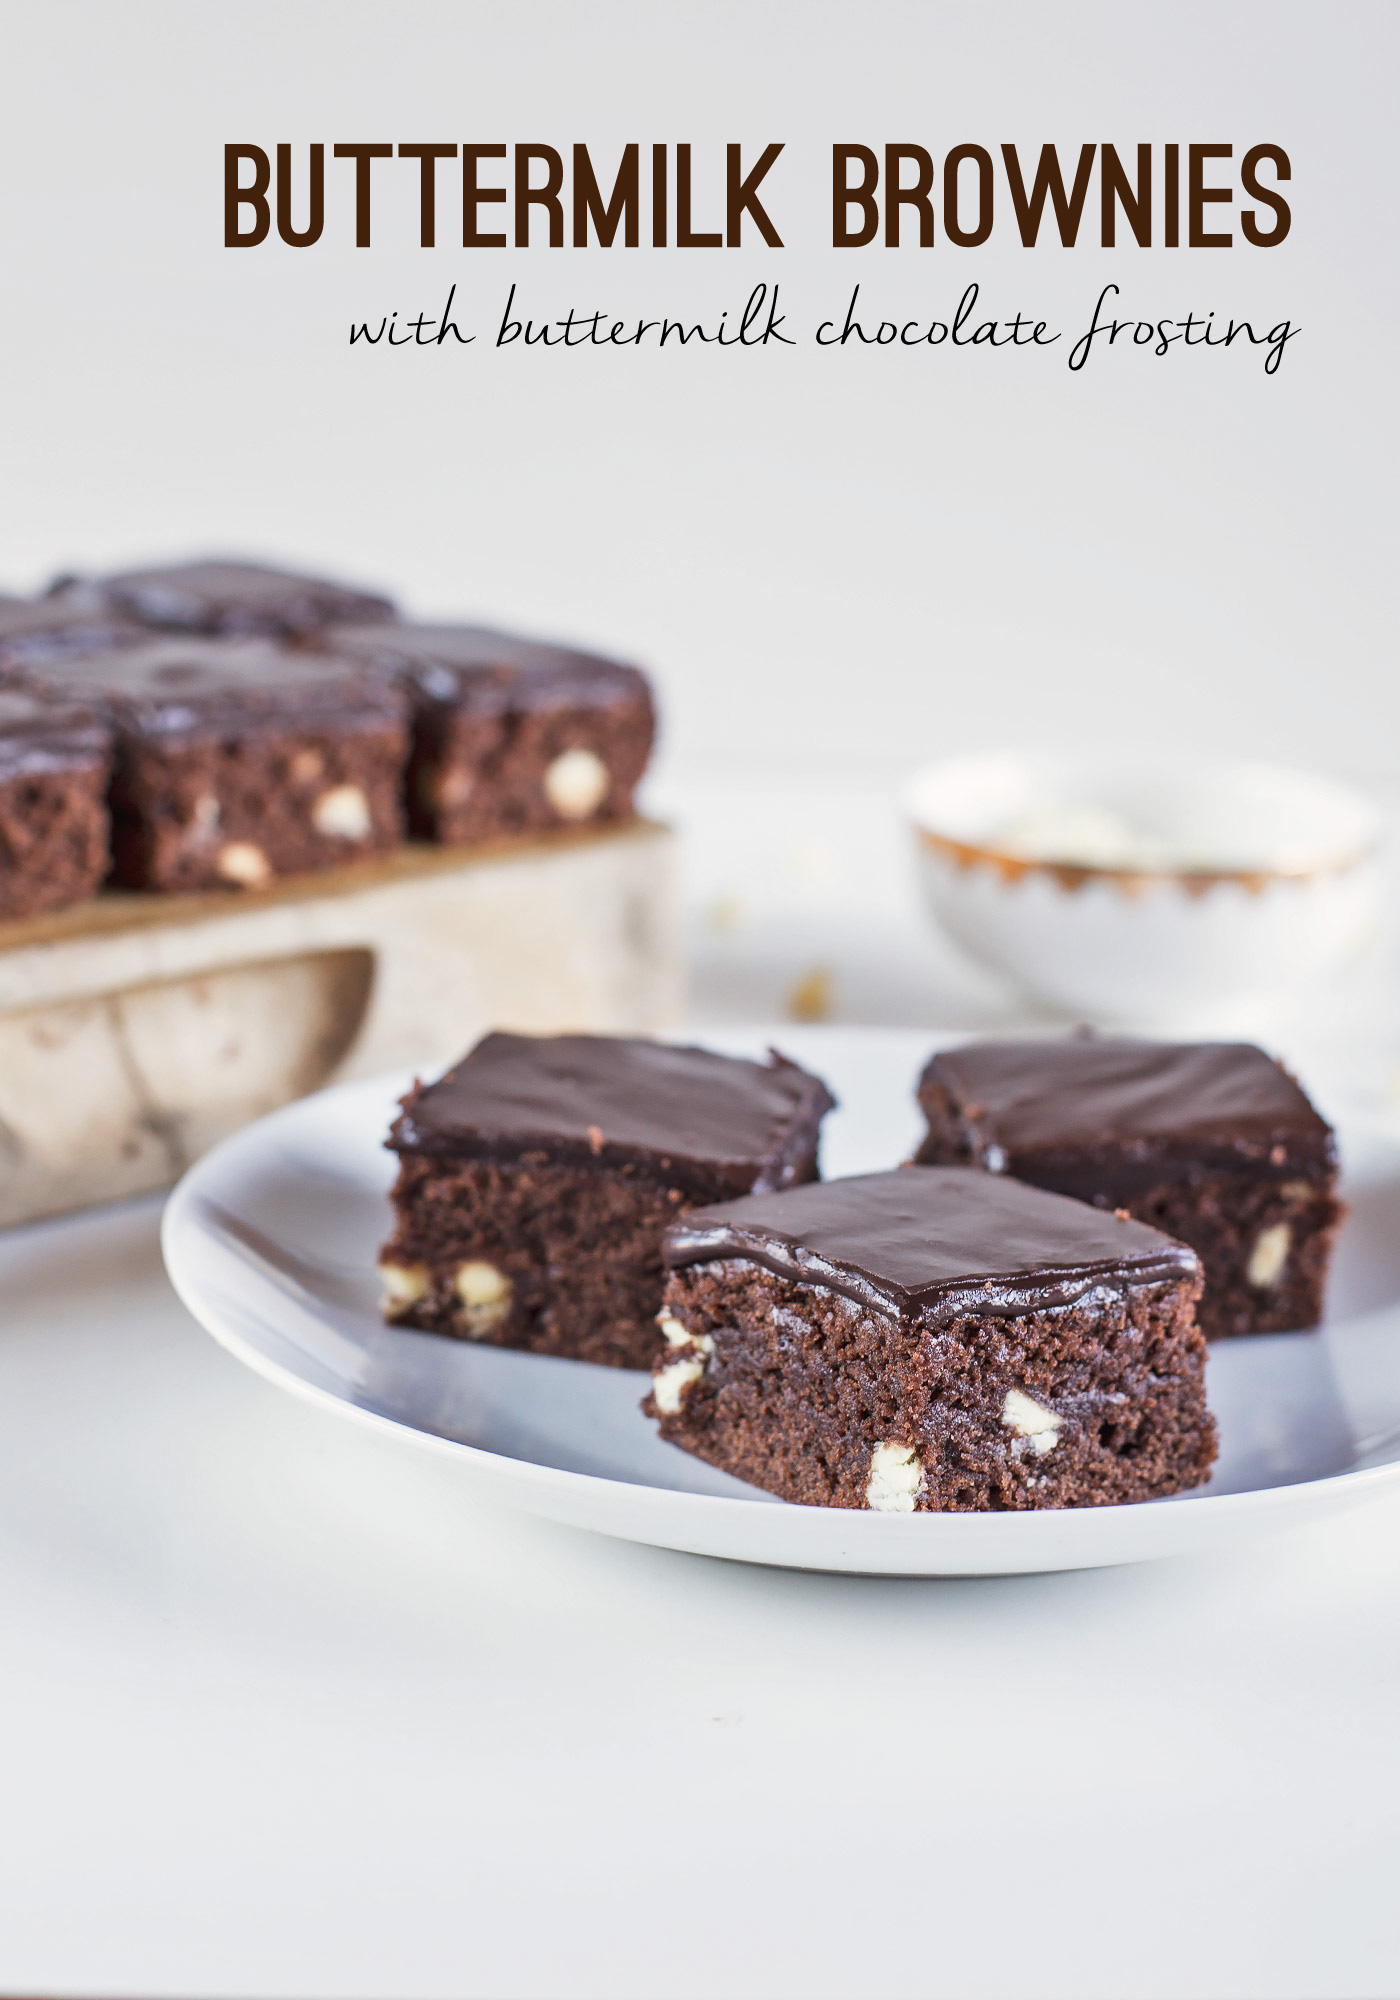 Buttermilk Brownies with Buttermilk Chocolate Frosting